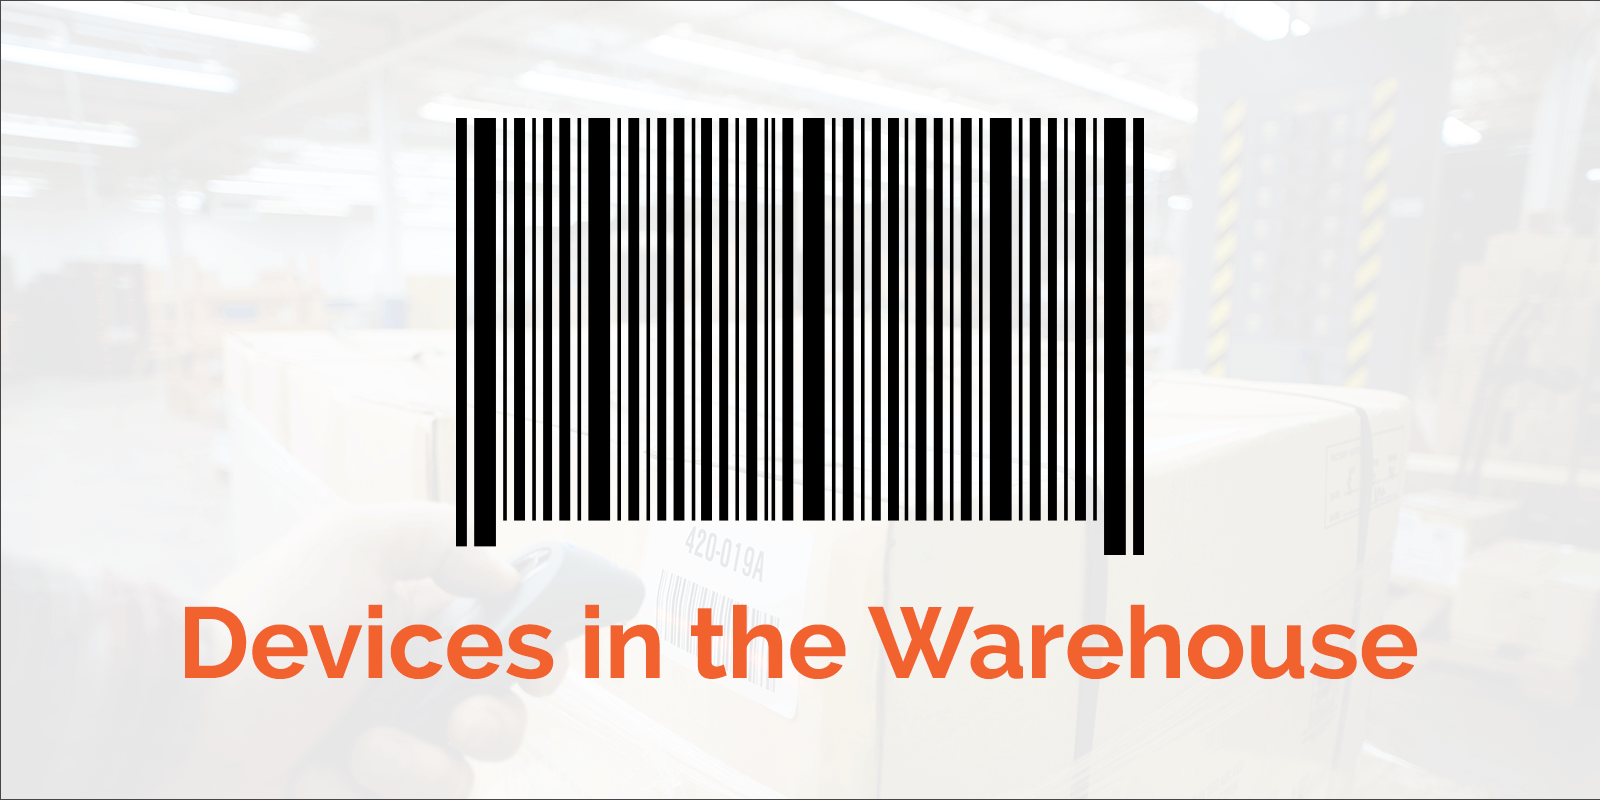 Device-in-the-Warehouse-Blog